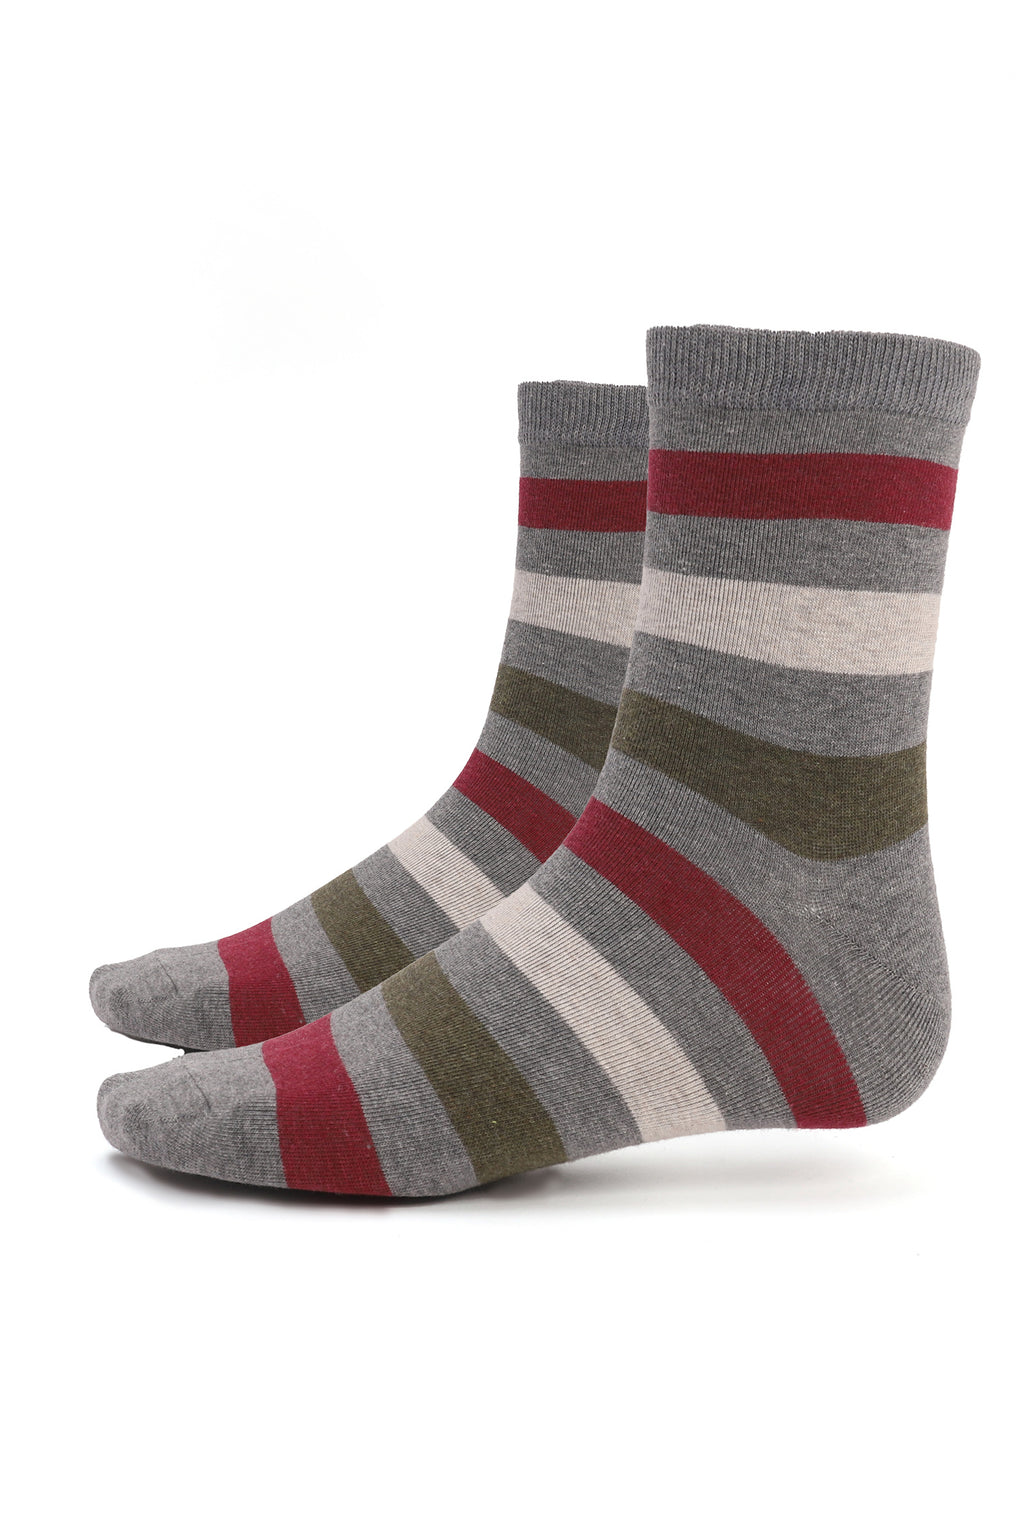 STRIPED SOCKS -GREY-GREEN